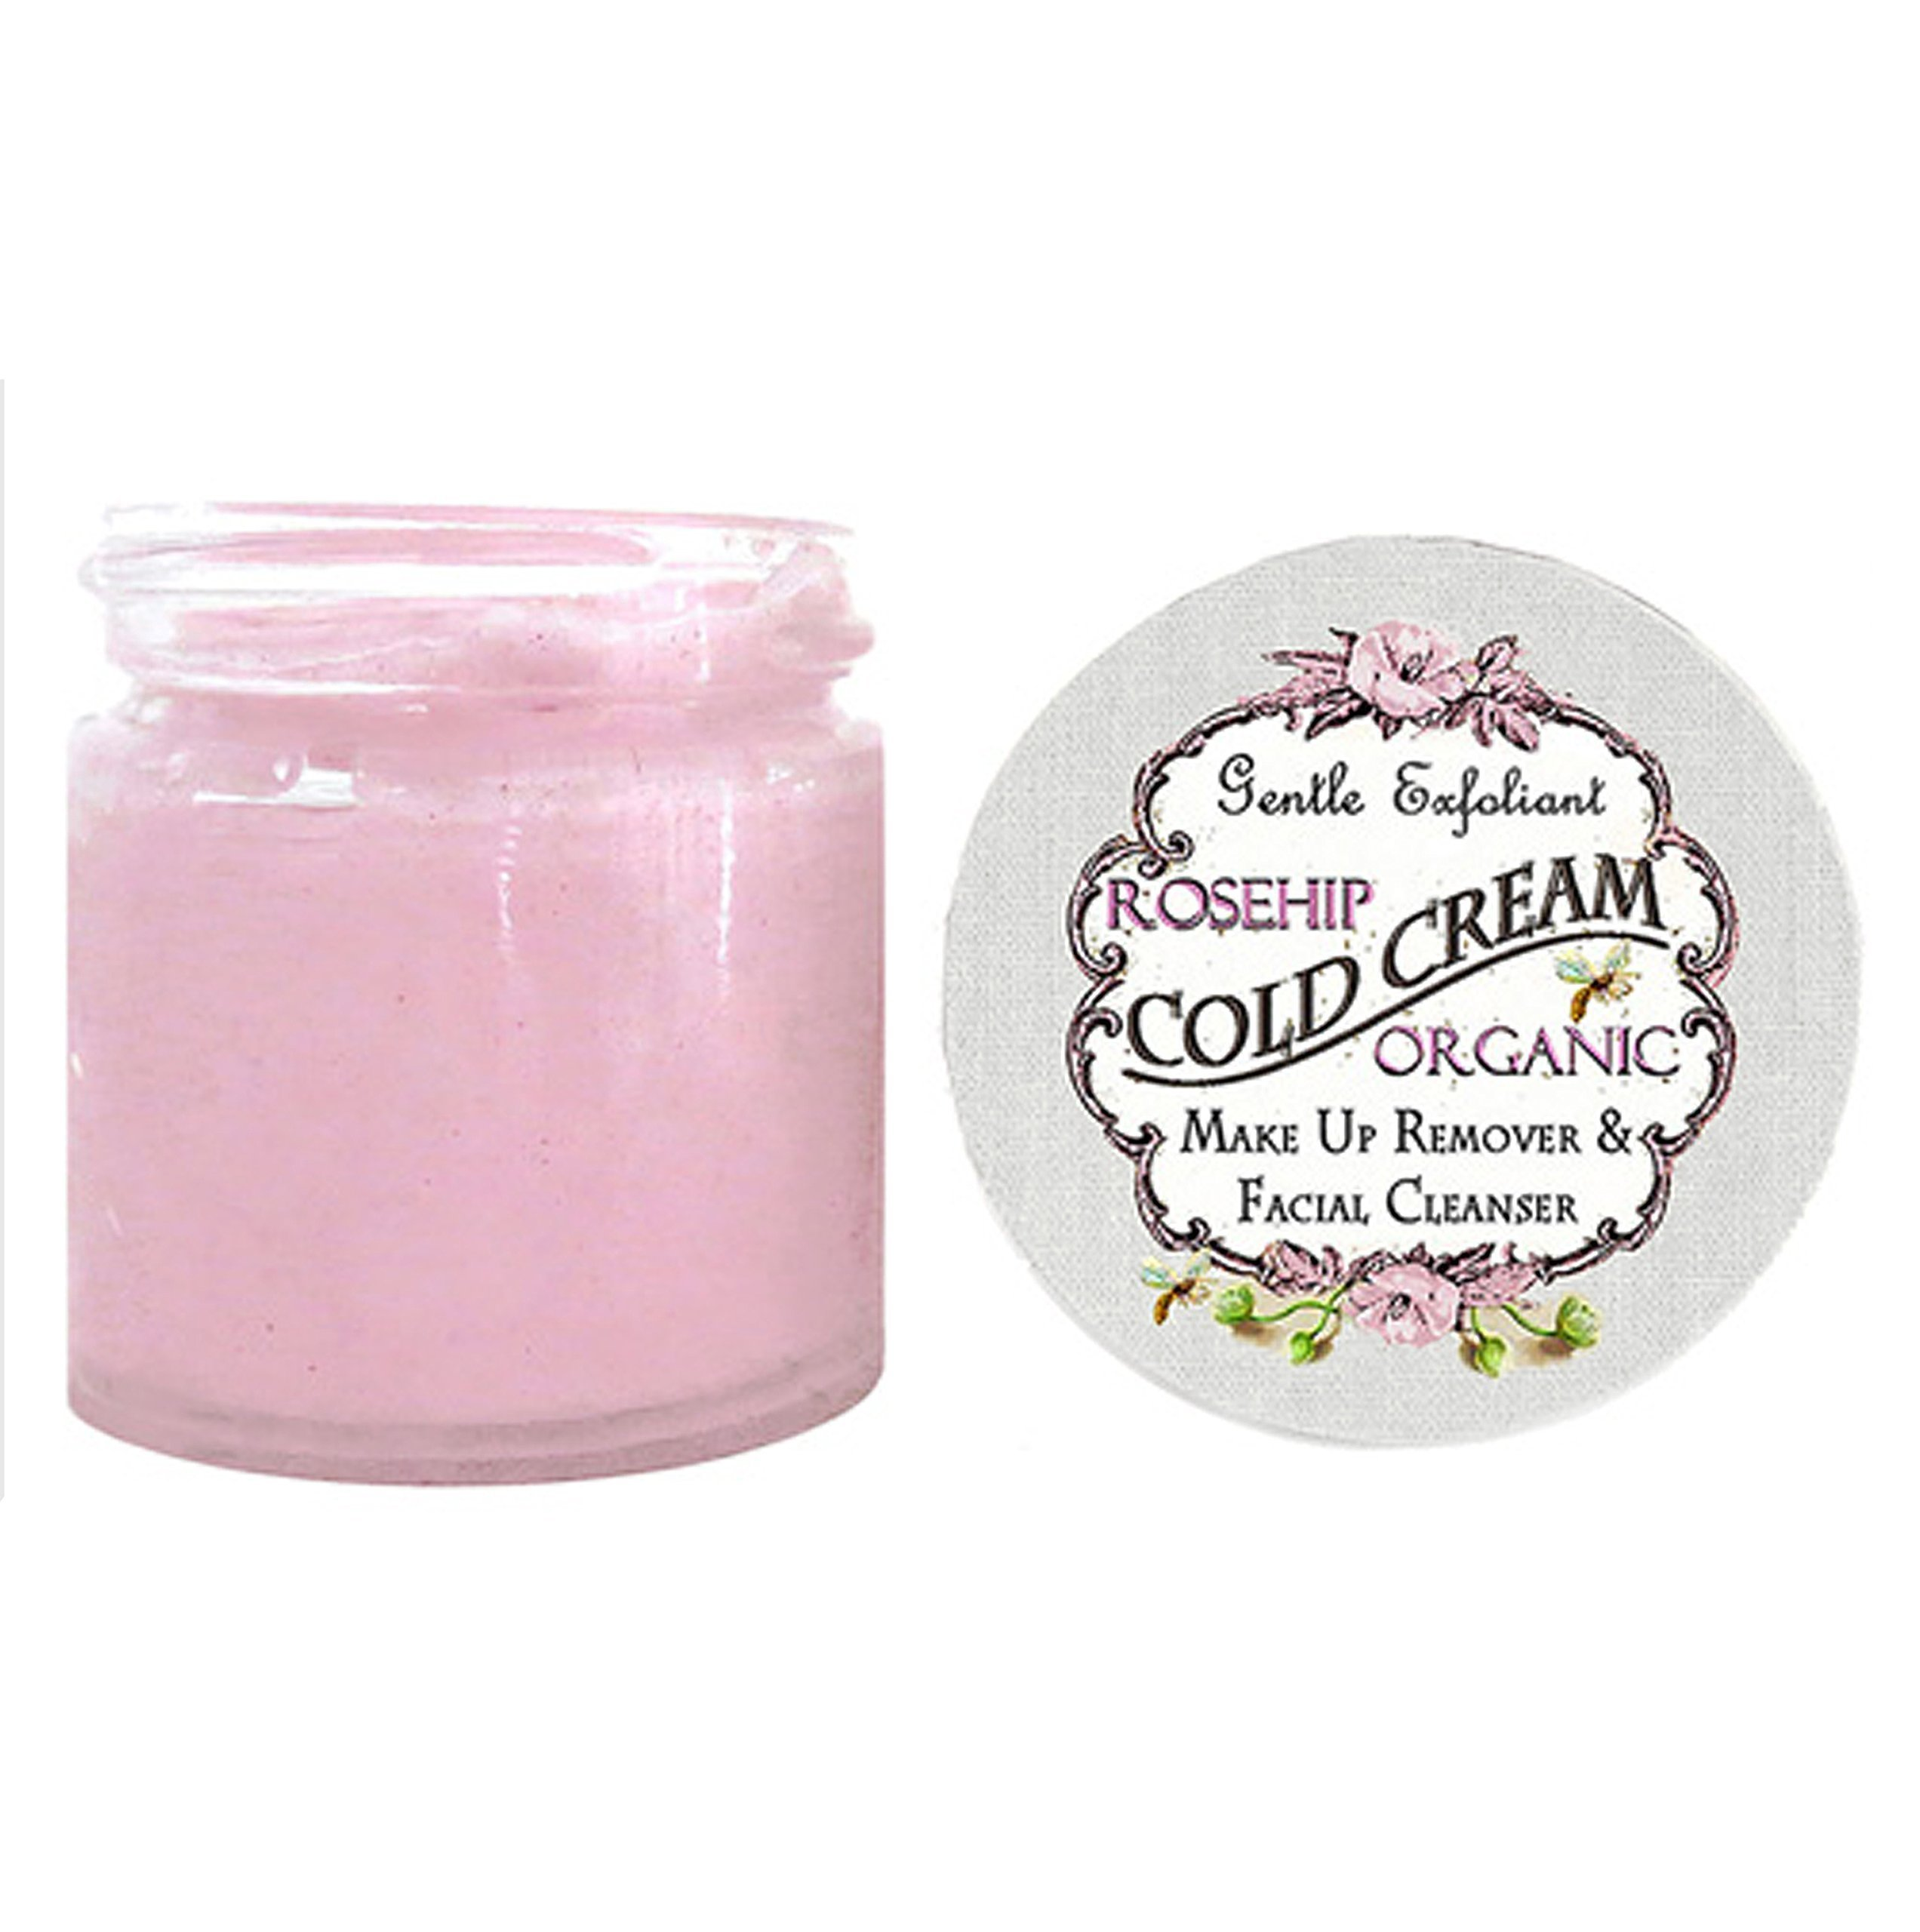 Organic ROSEHIP & COCONUT OIL Face CREAM Cleanser Makeup Remover and Facial Cleanser 100% Chemical Free Rose Cream Cleanser 4 OZ Glass JAR